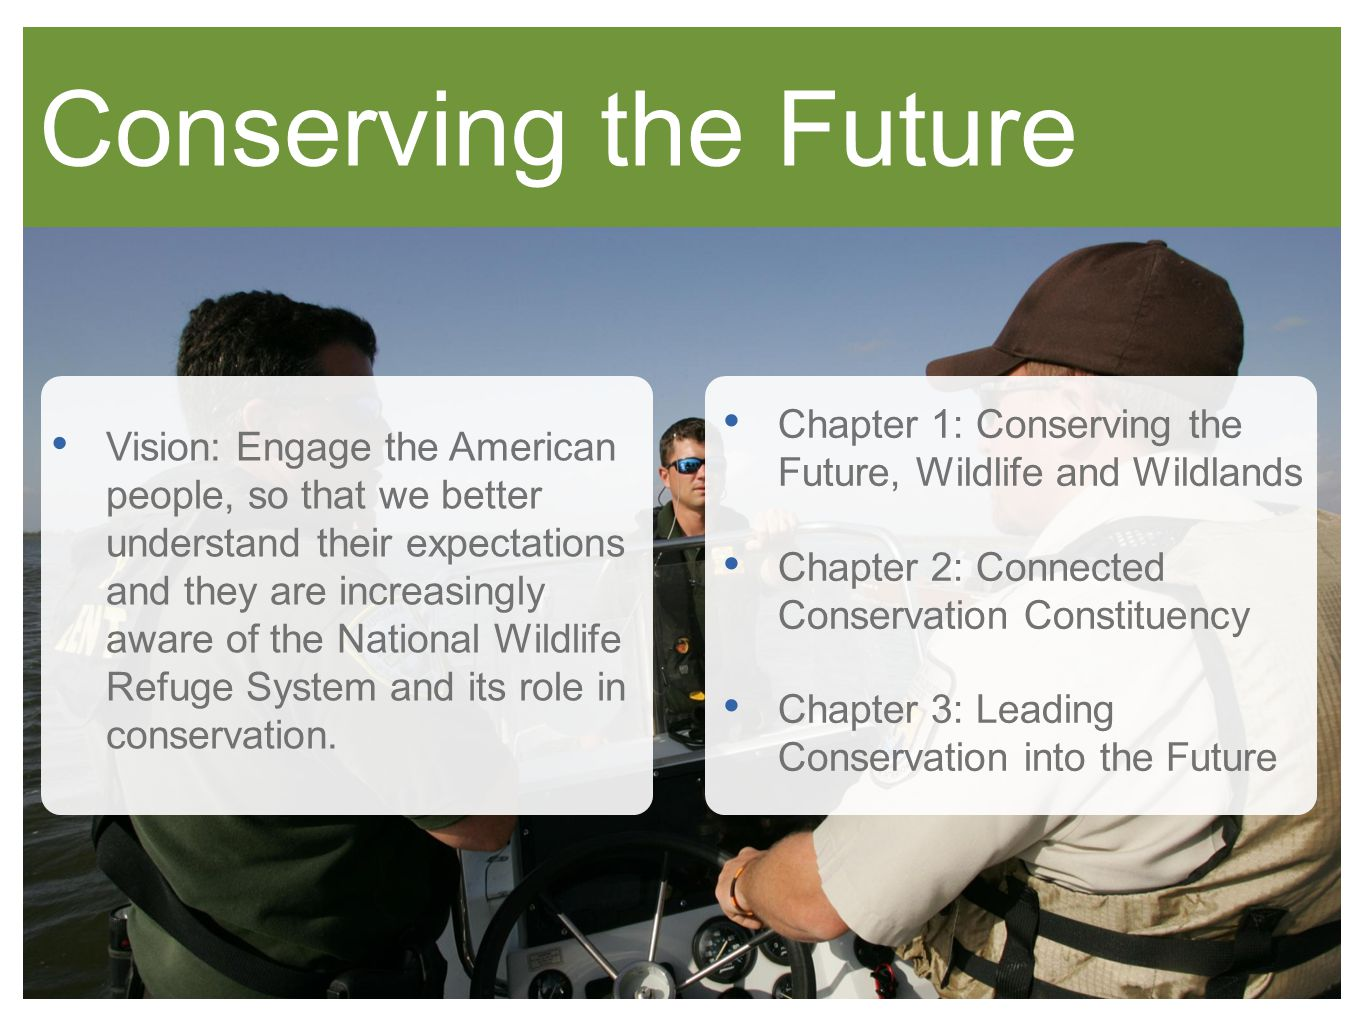 Conserving the Future Vision: Engage the American people, so that we better understand their expectations and they are increasingly aware of the National Wildlife Refuge System and its role in conservation.